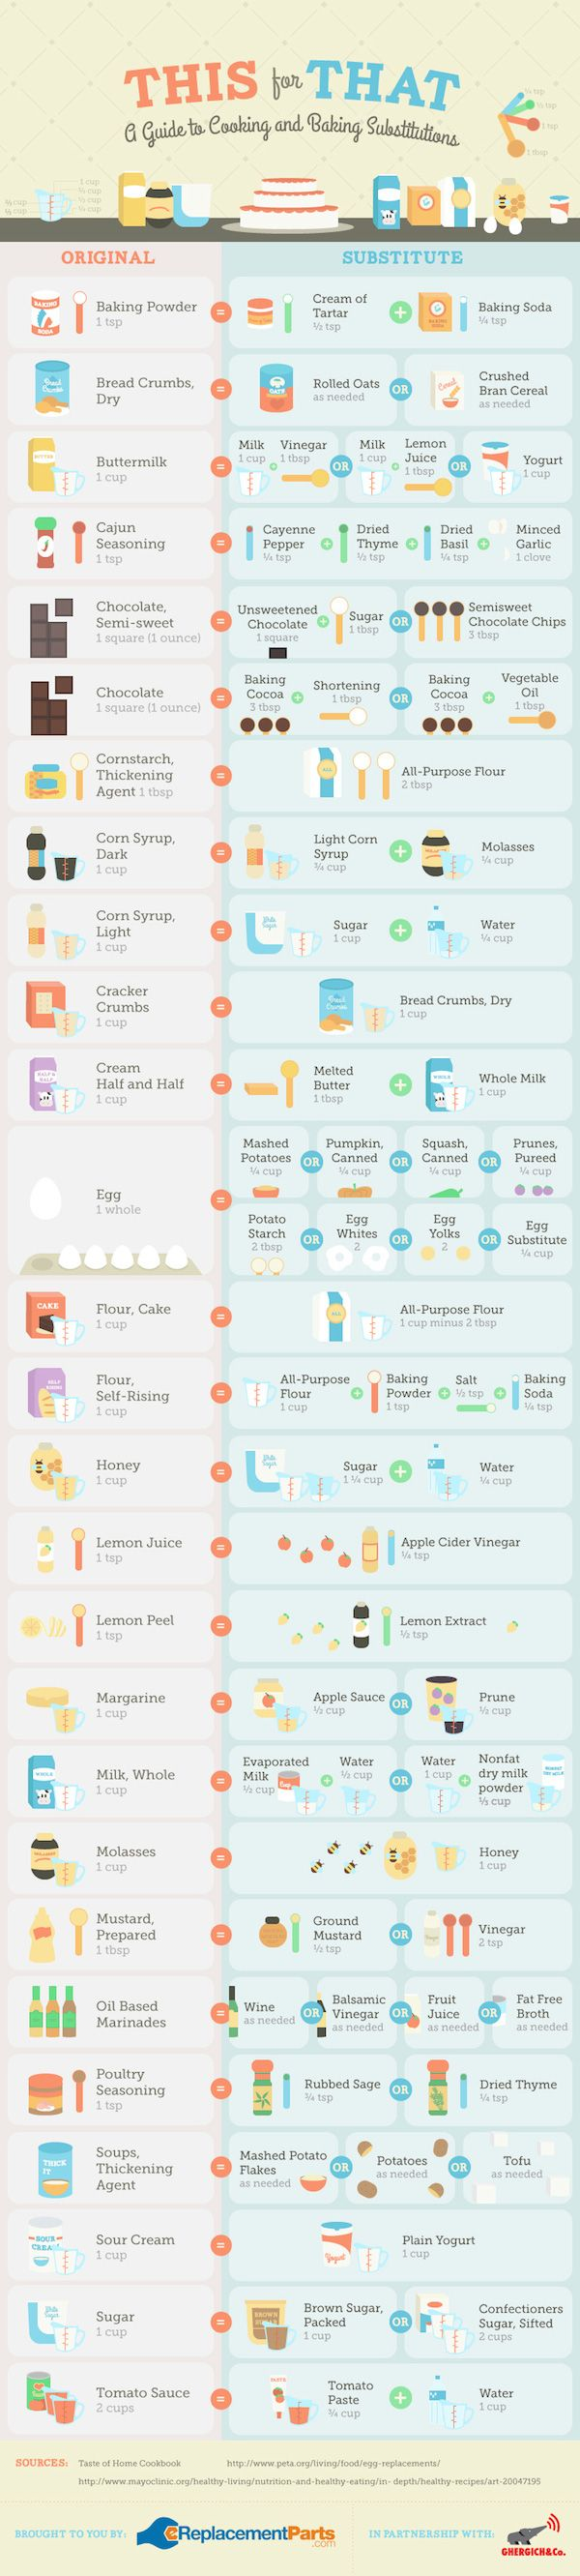 "Did you know you can make a buttermilk substitute by adding a tablespoon of vinegar or lemon juice to a cup of milk? Here are 26 more ""this for that"" swaps!"